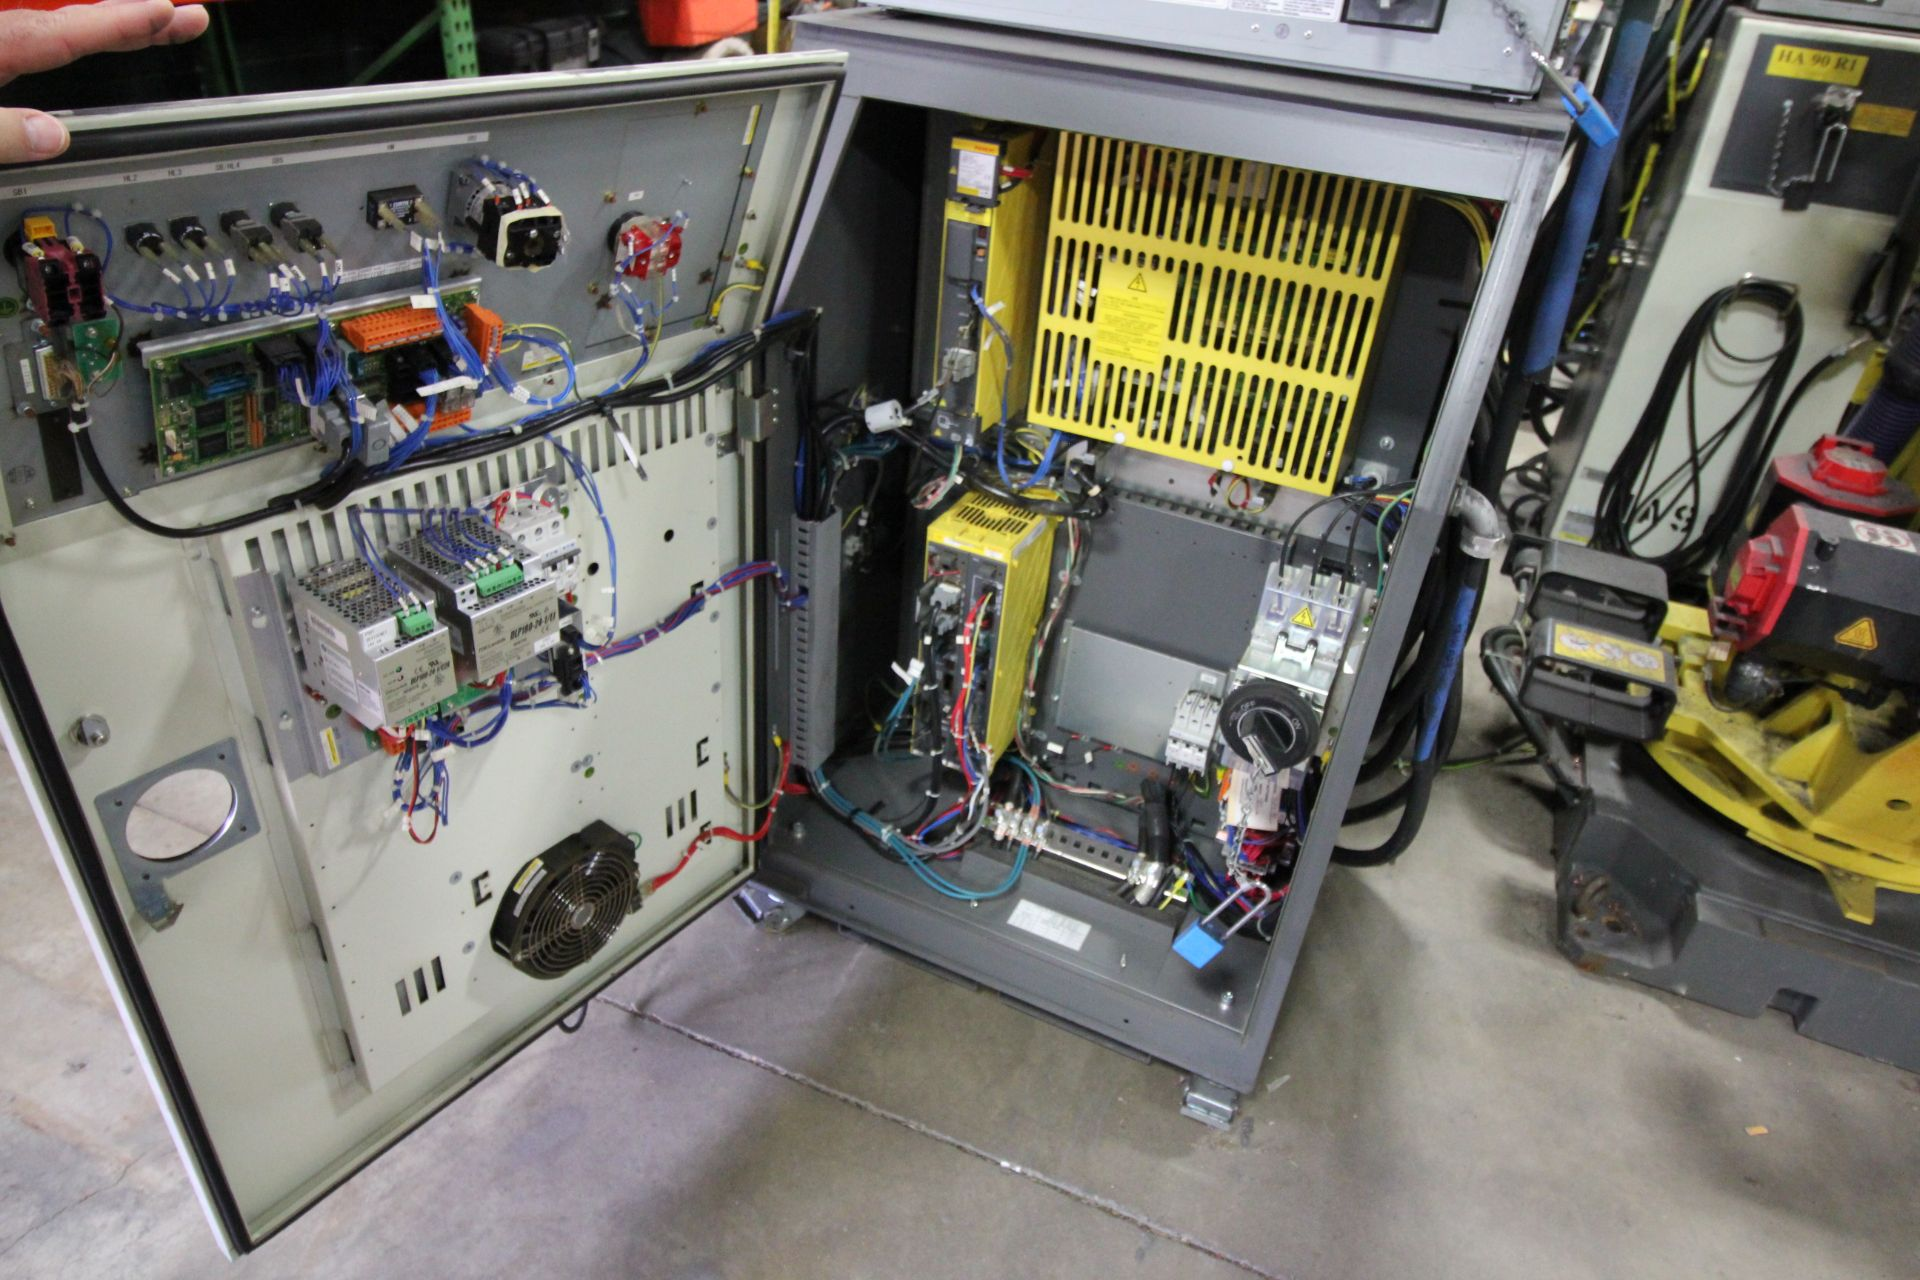 FANUC ROBOT R-2000iB/210F WITH R-30iA CONTROL, CABLES & TEACH PENDANT, SN 148715, YEAR 2014 - Image 4 of 8